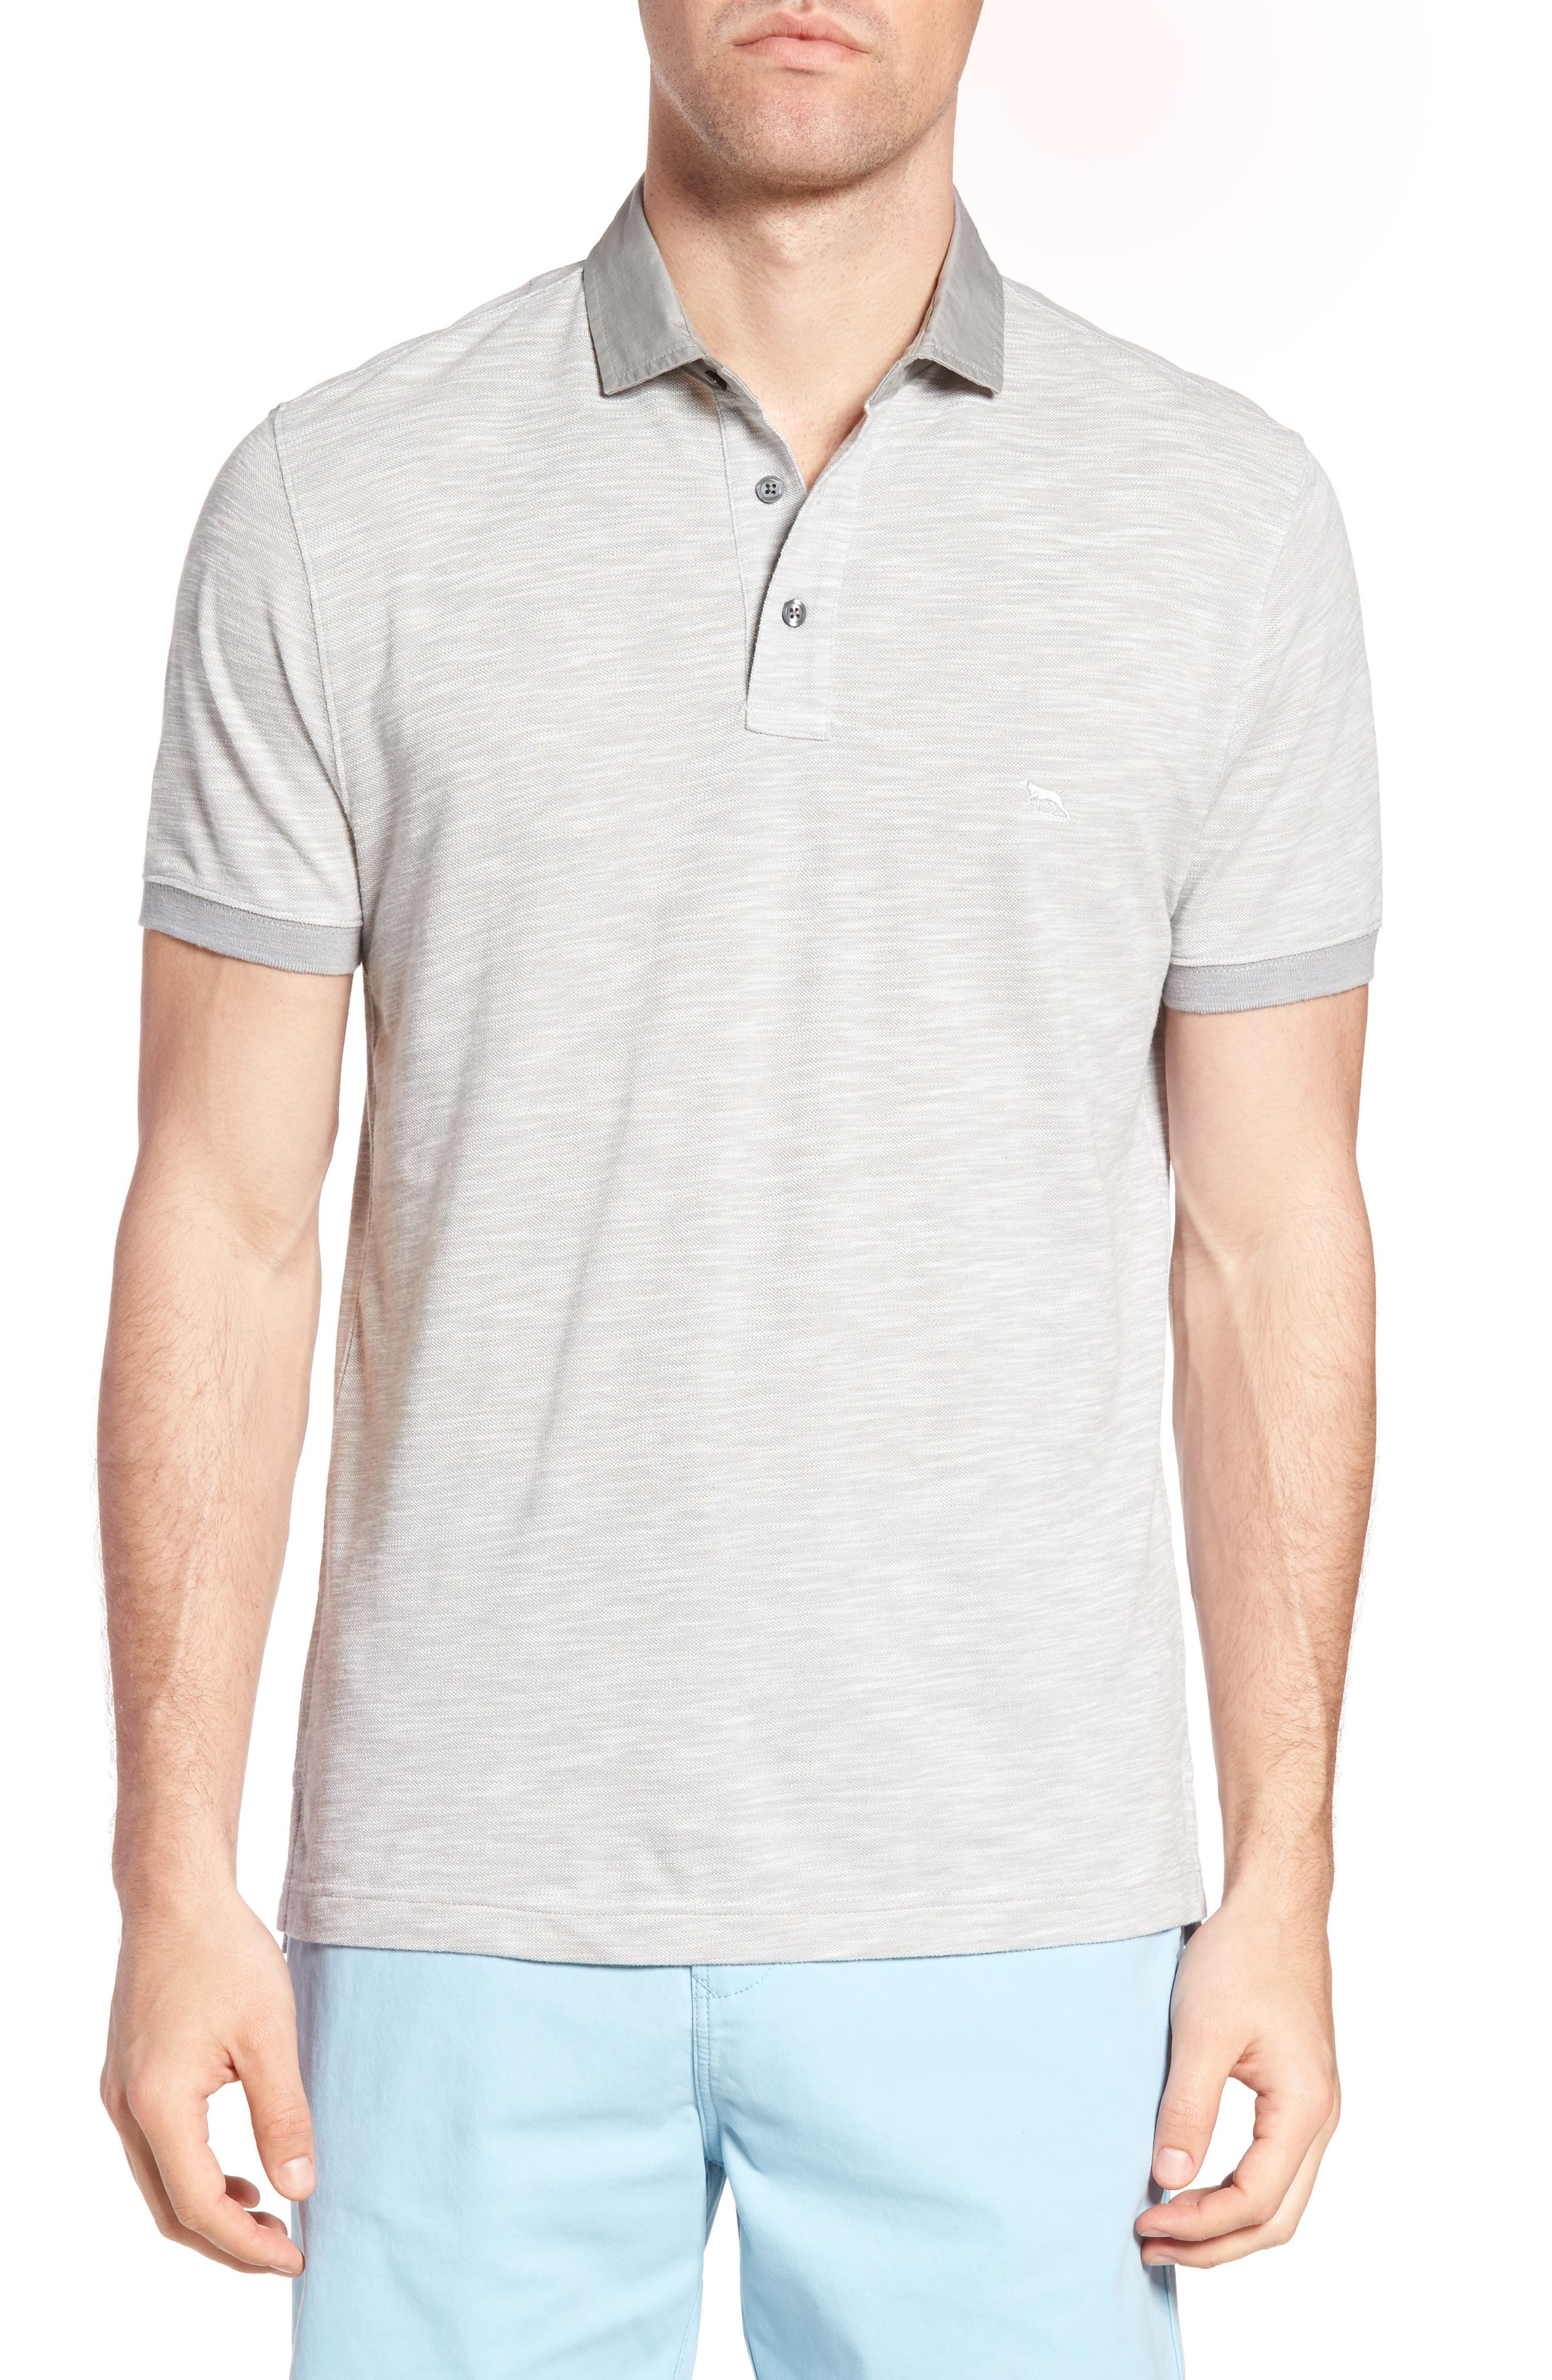 Rodd & Gunn Edenville Cotton Polo